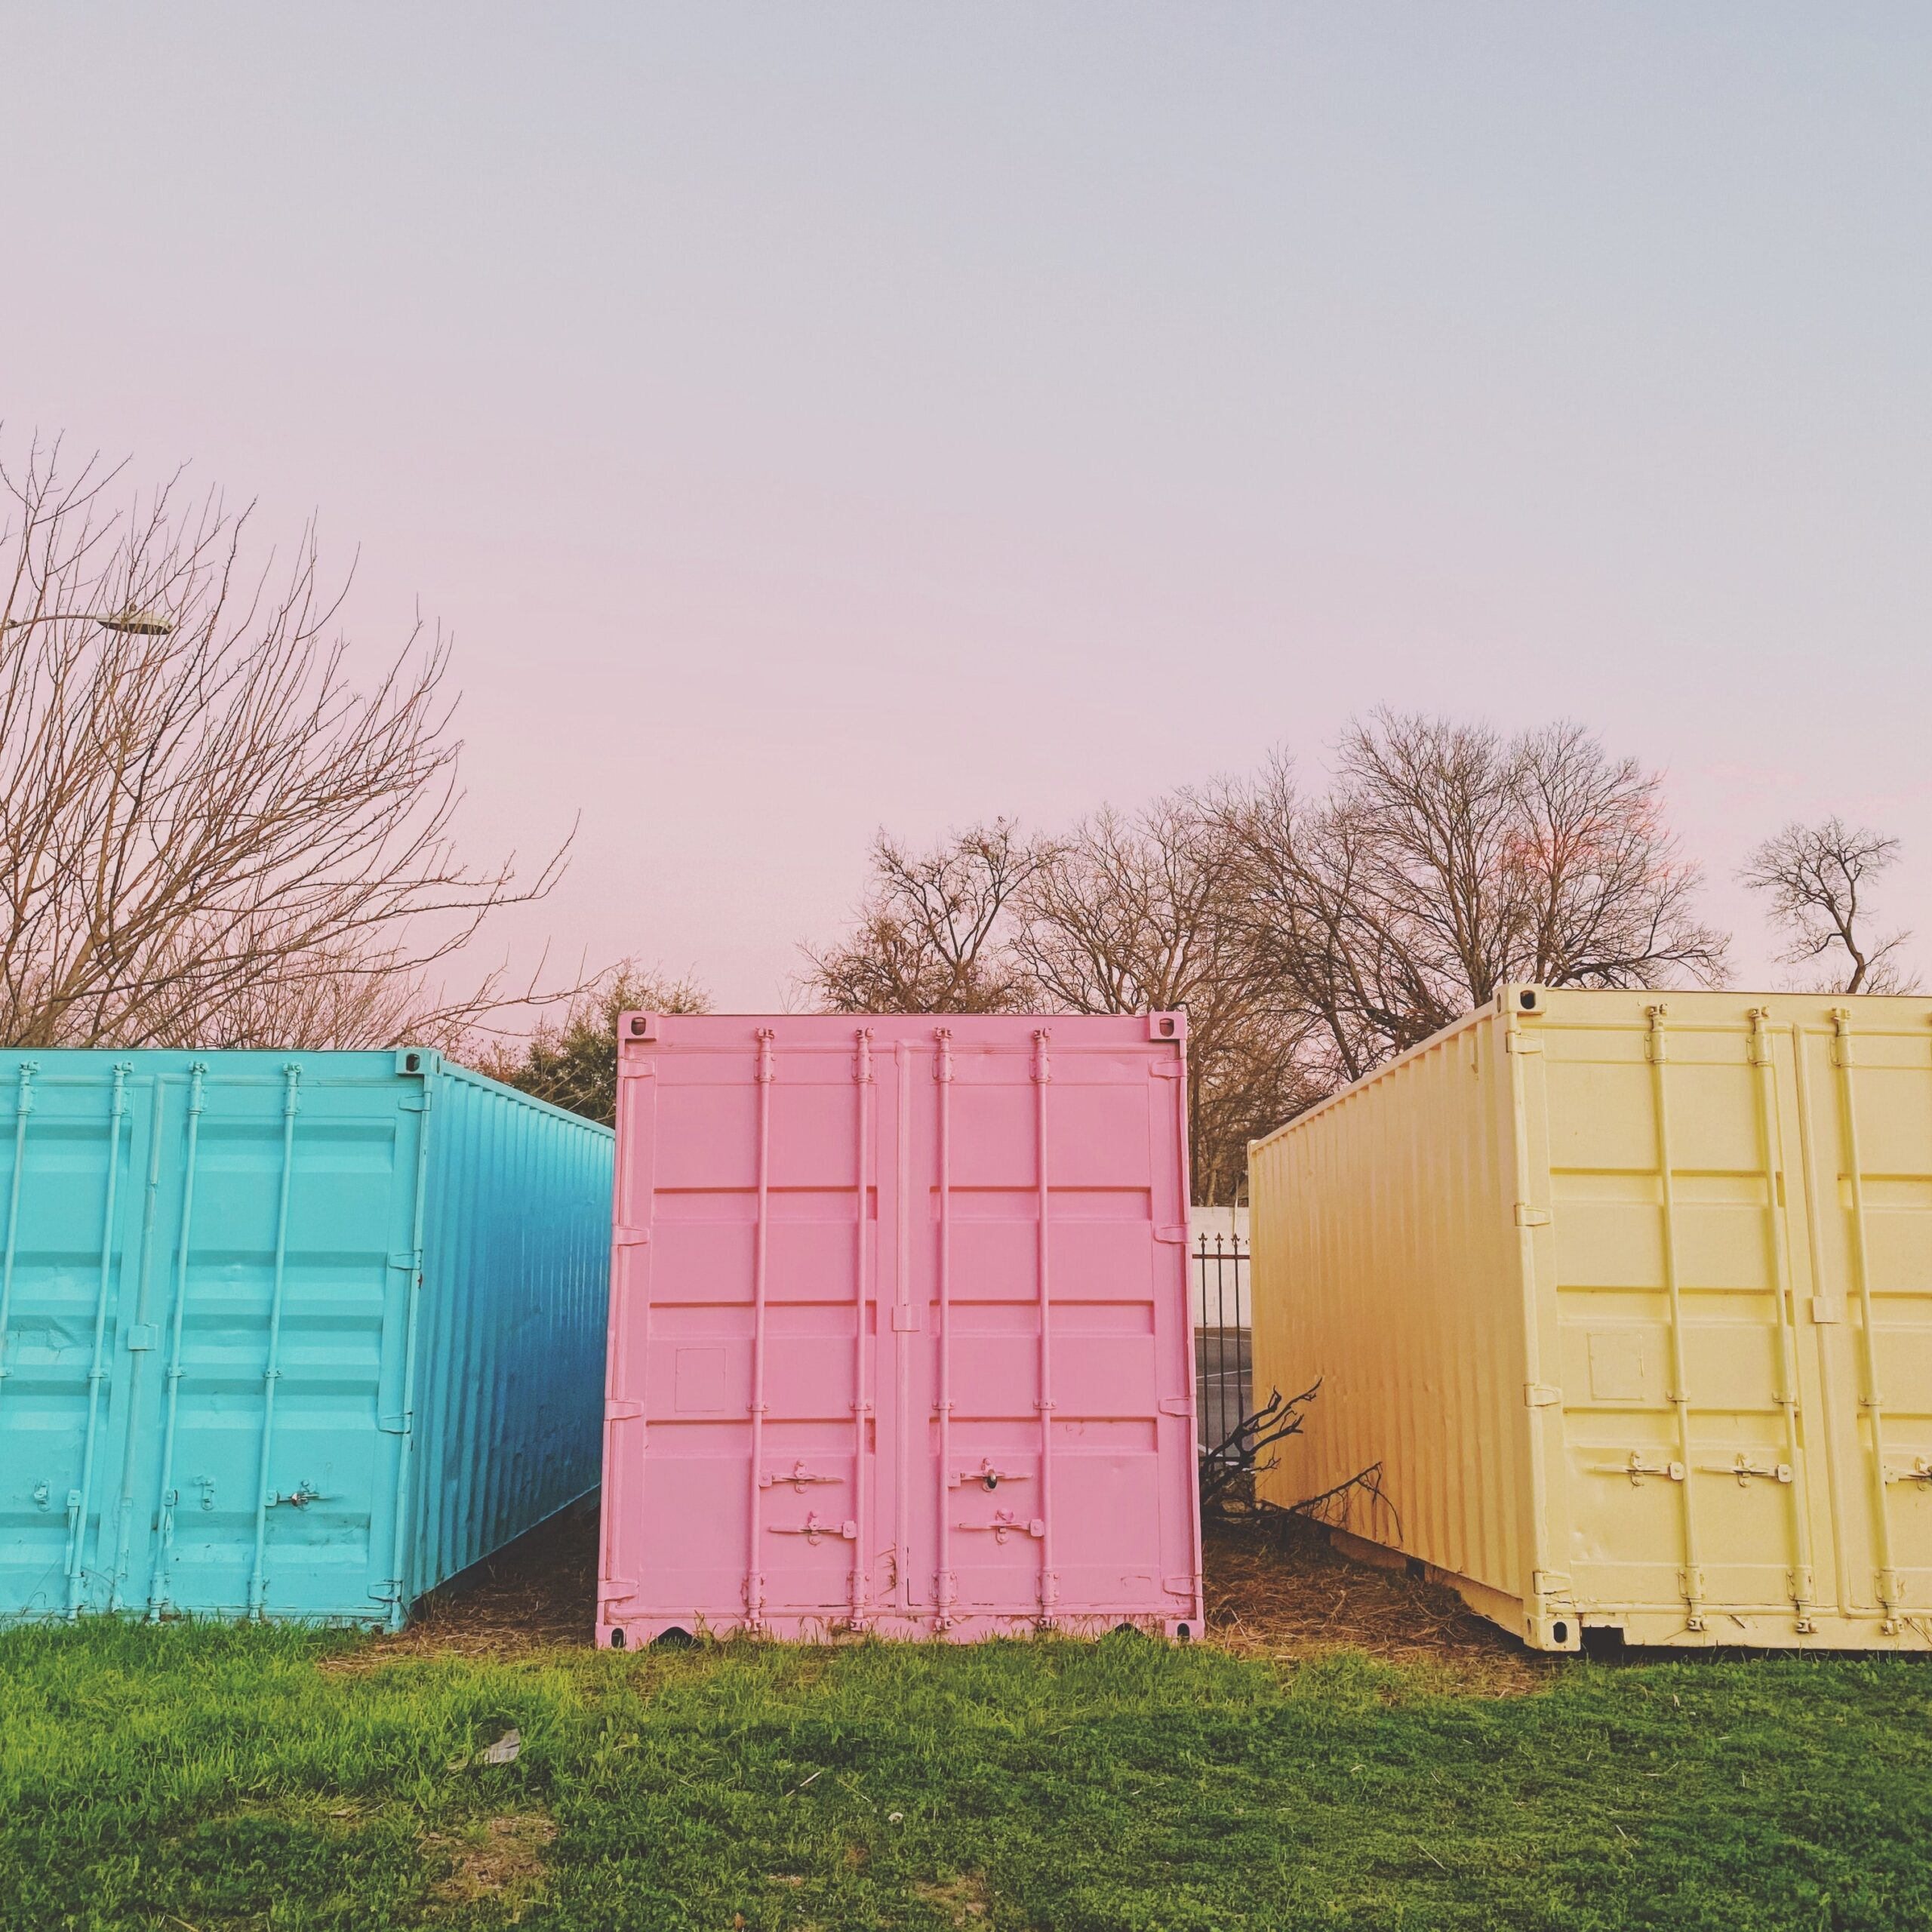 Container Farming explained